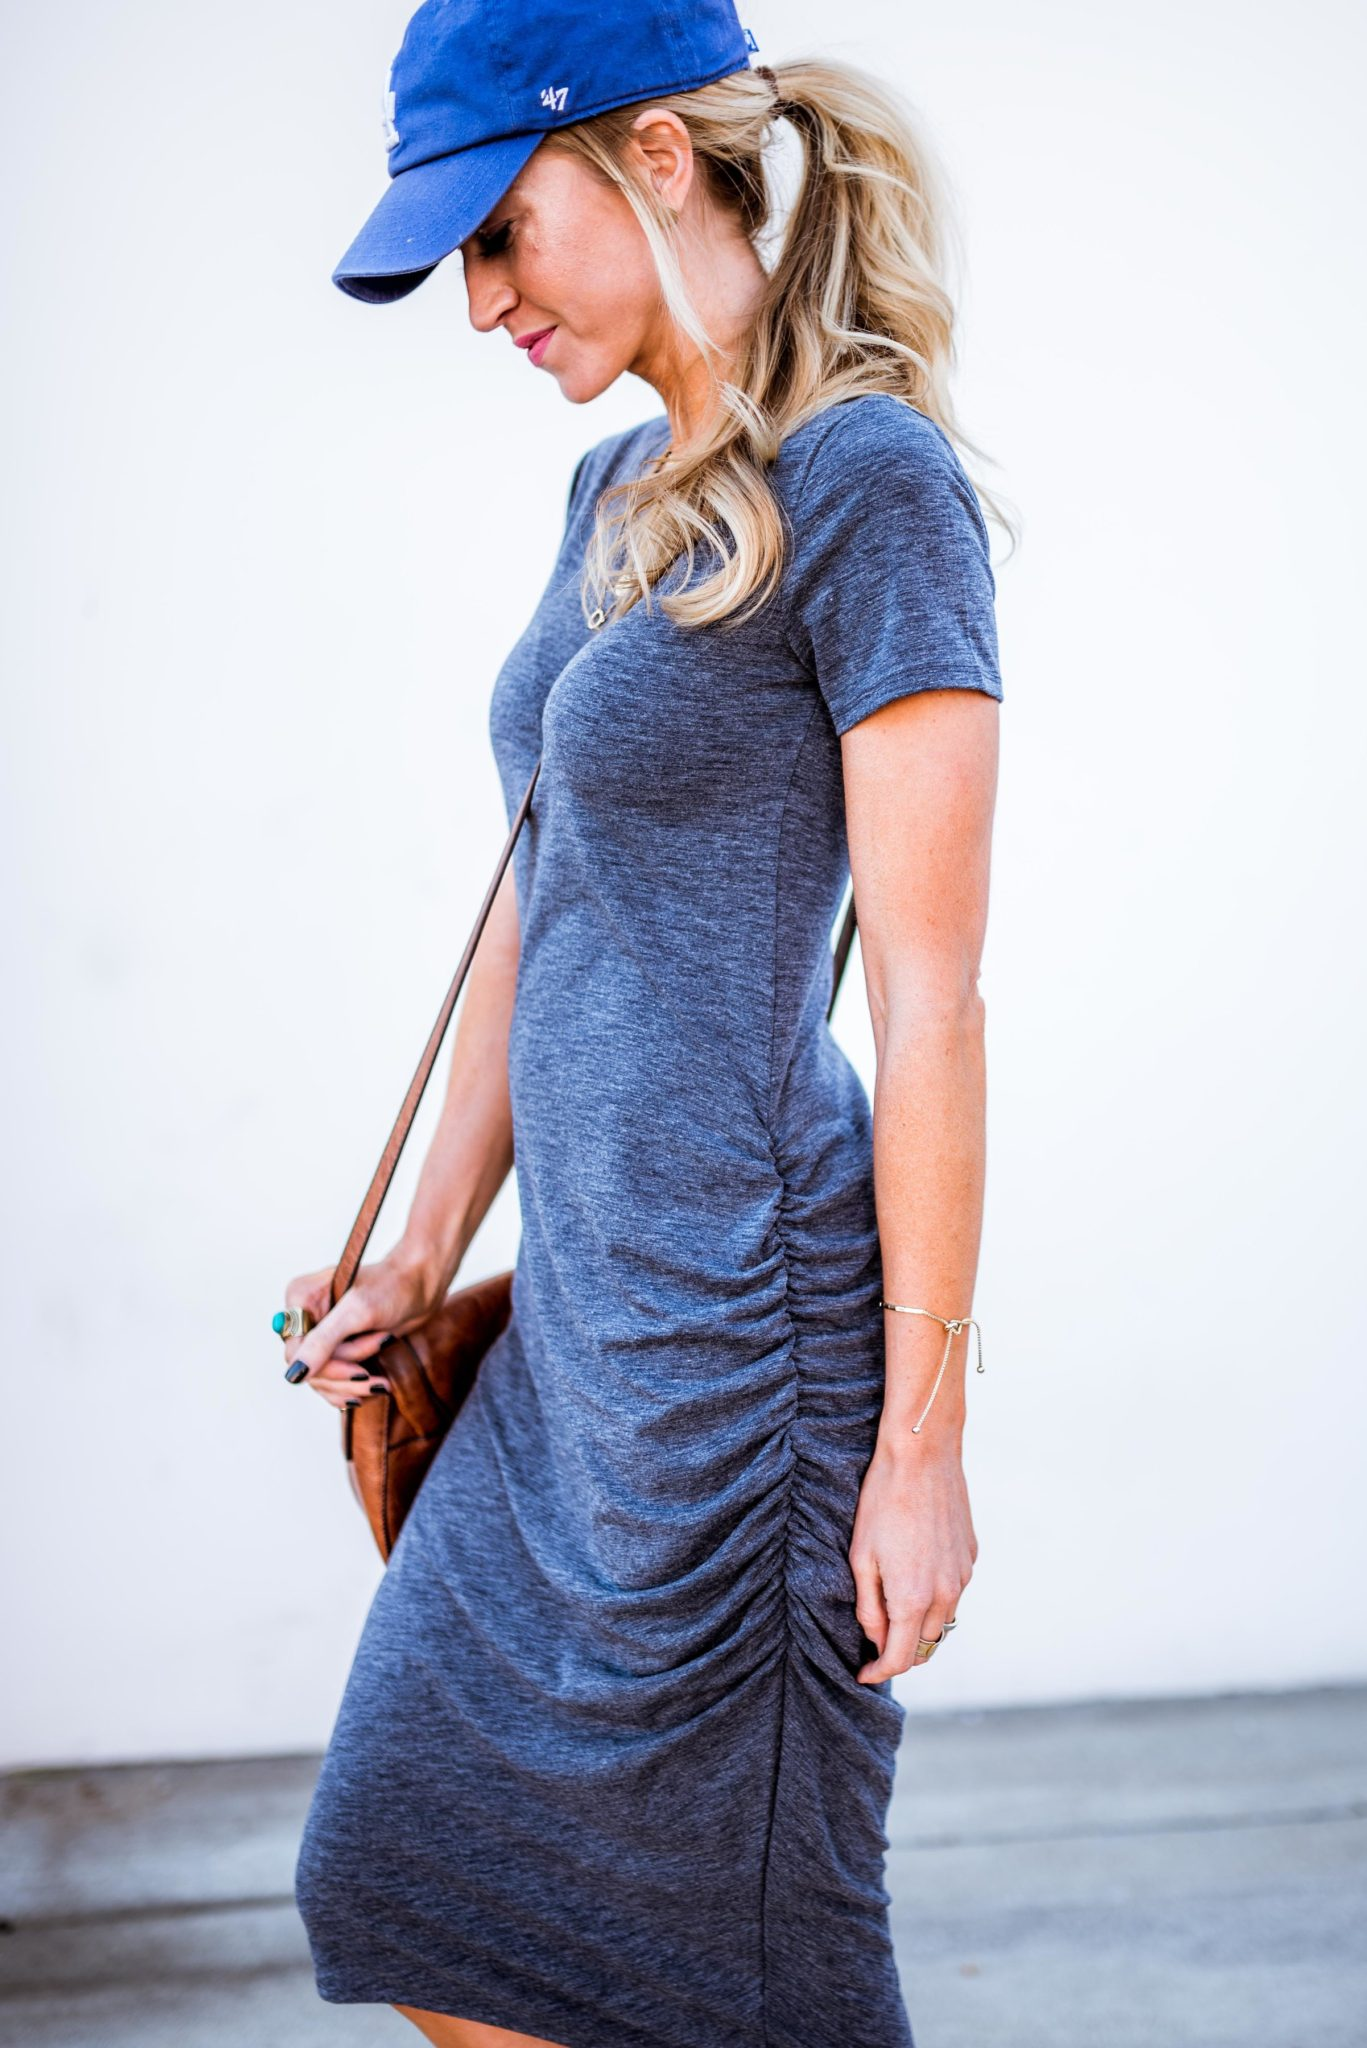 Ruched t-shirt dress, perfect for Spring and Summer.